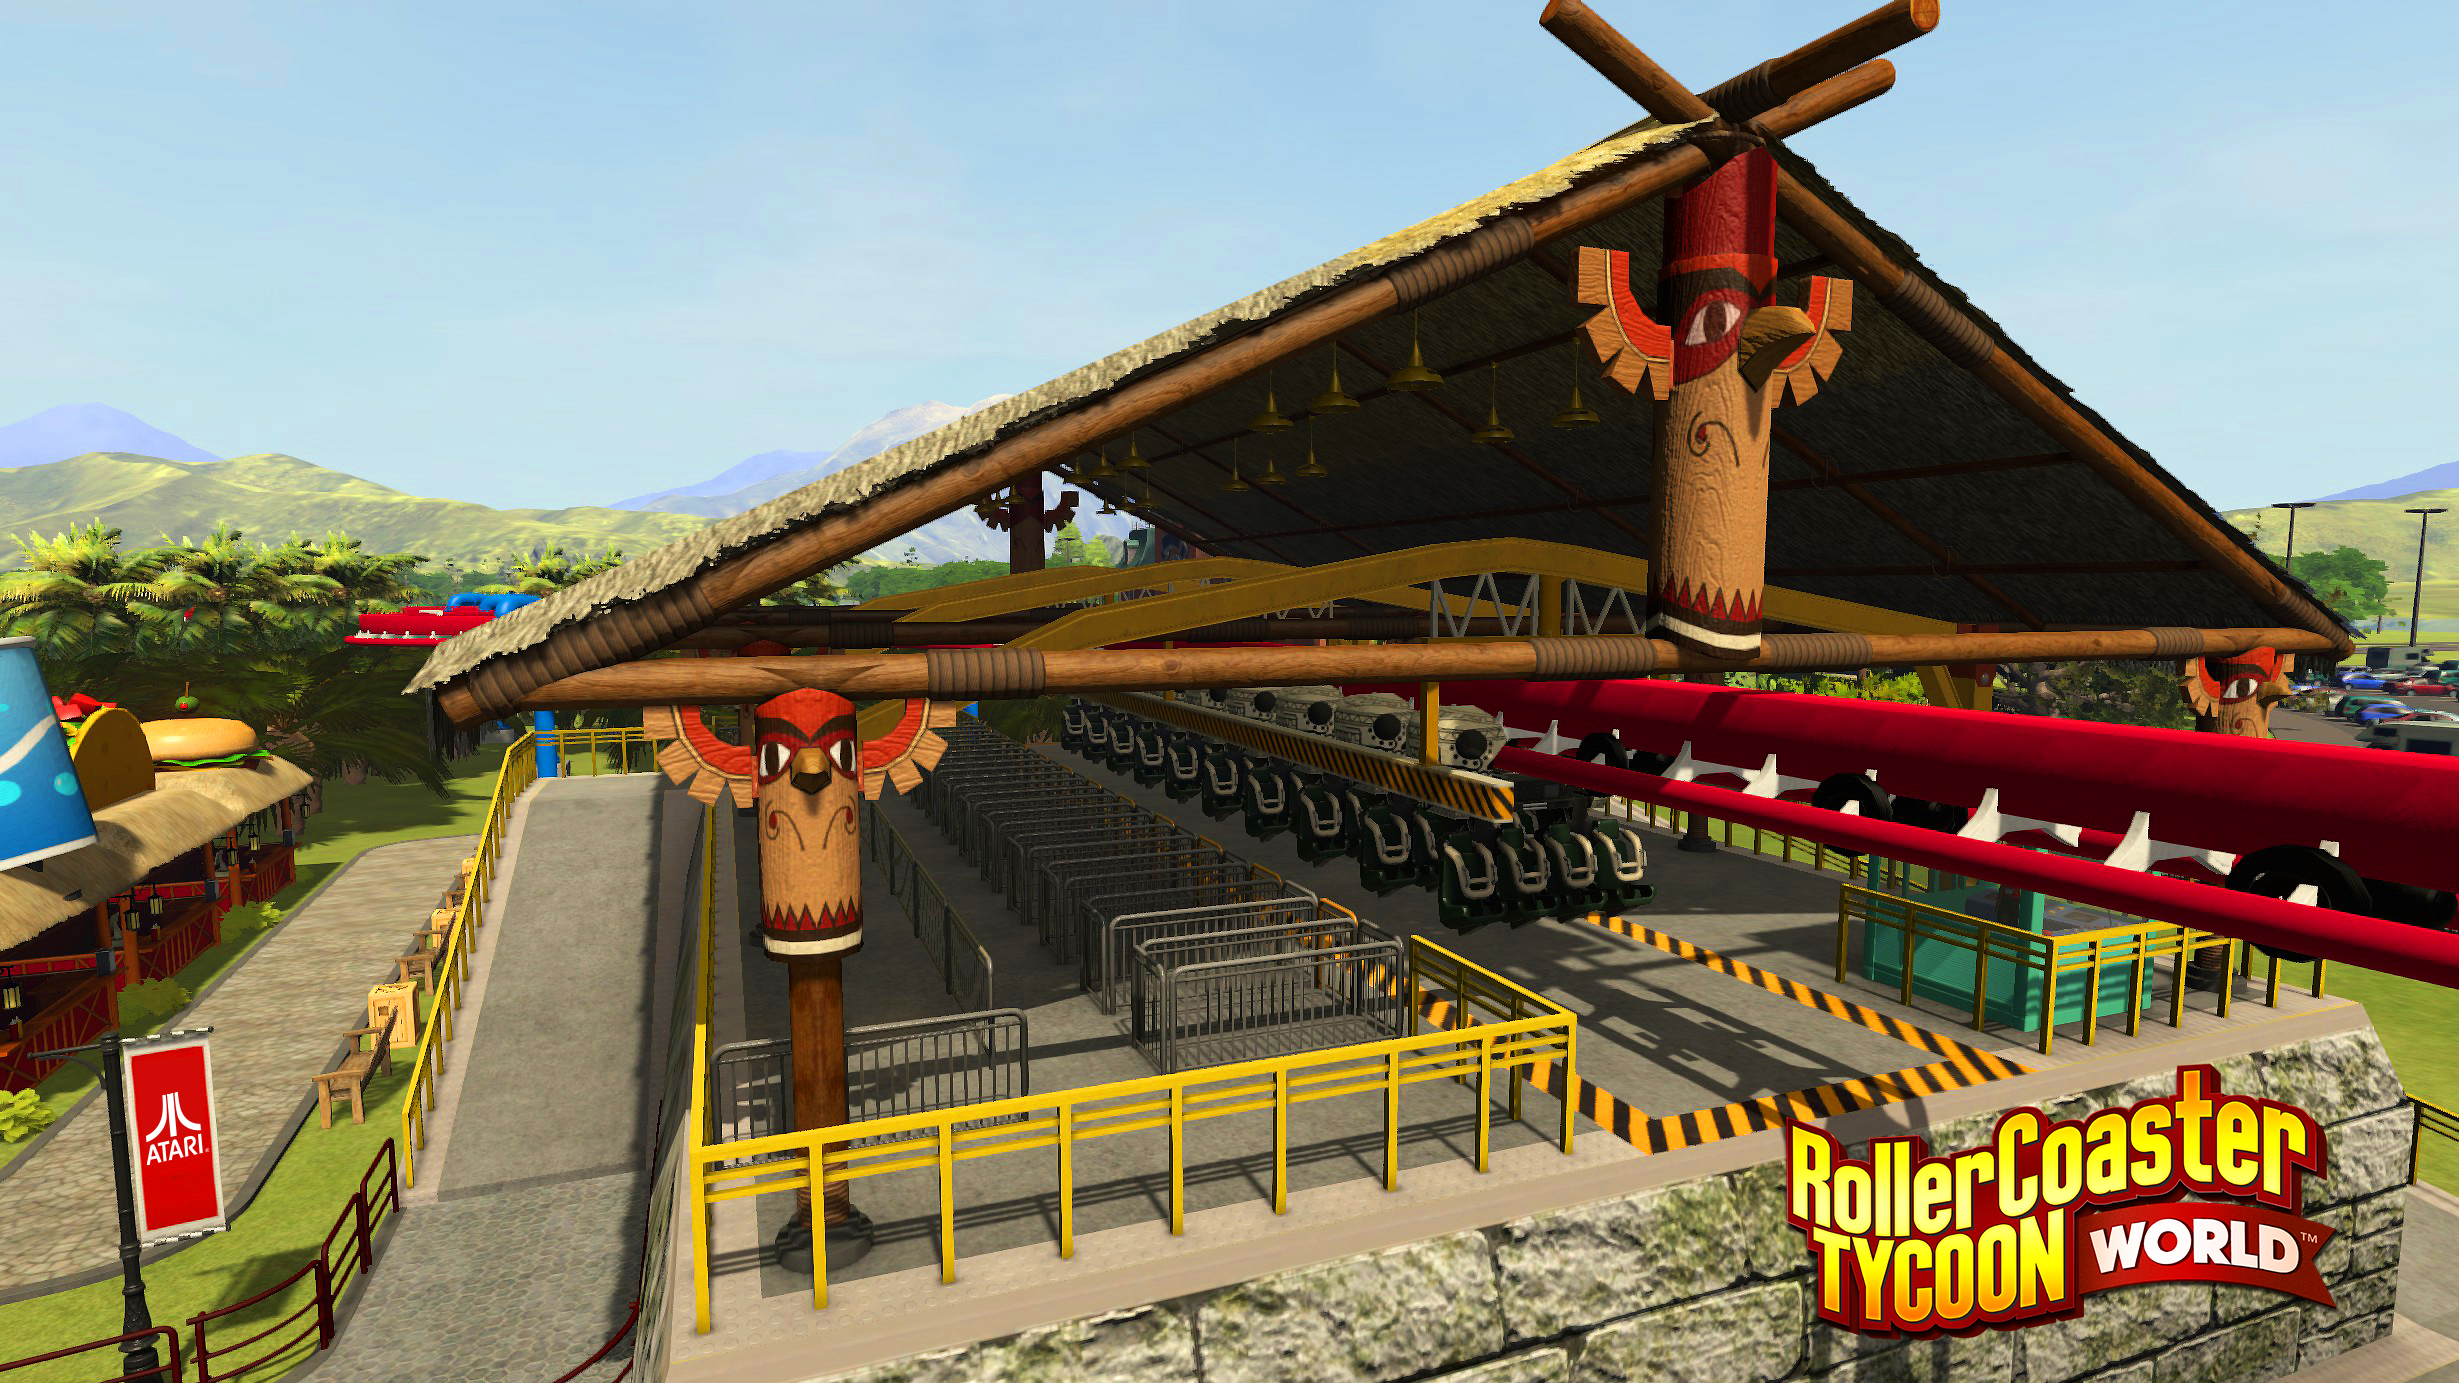 RollerCoaster Tycoon World Archives - Theme Park Games